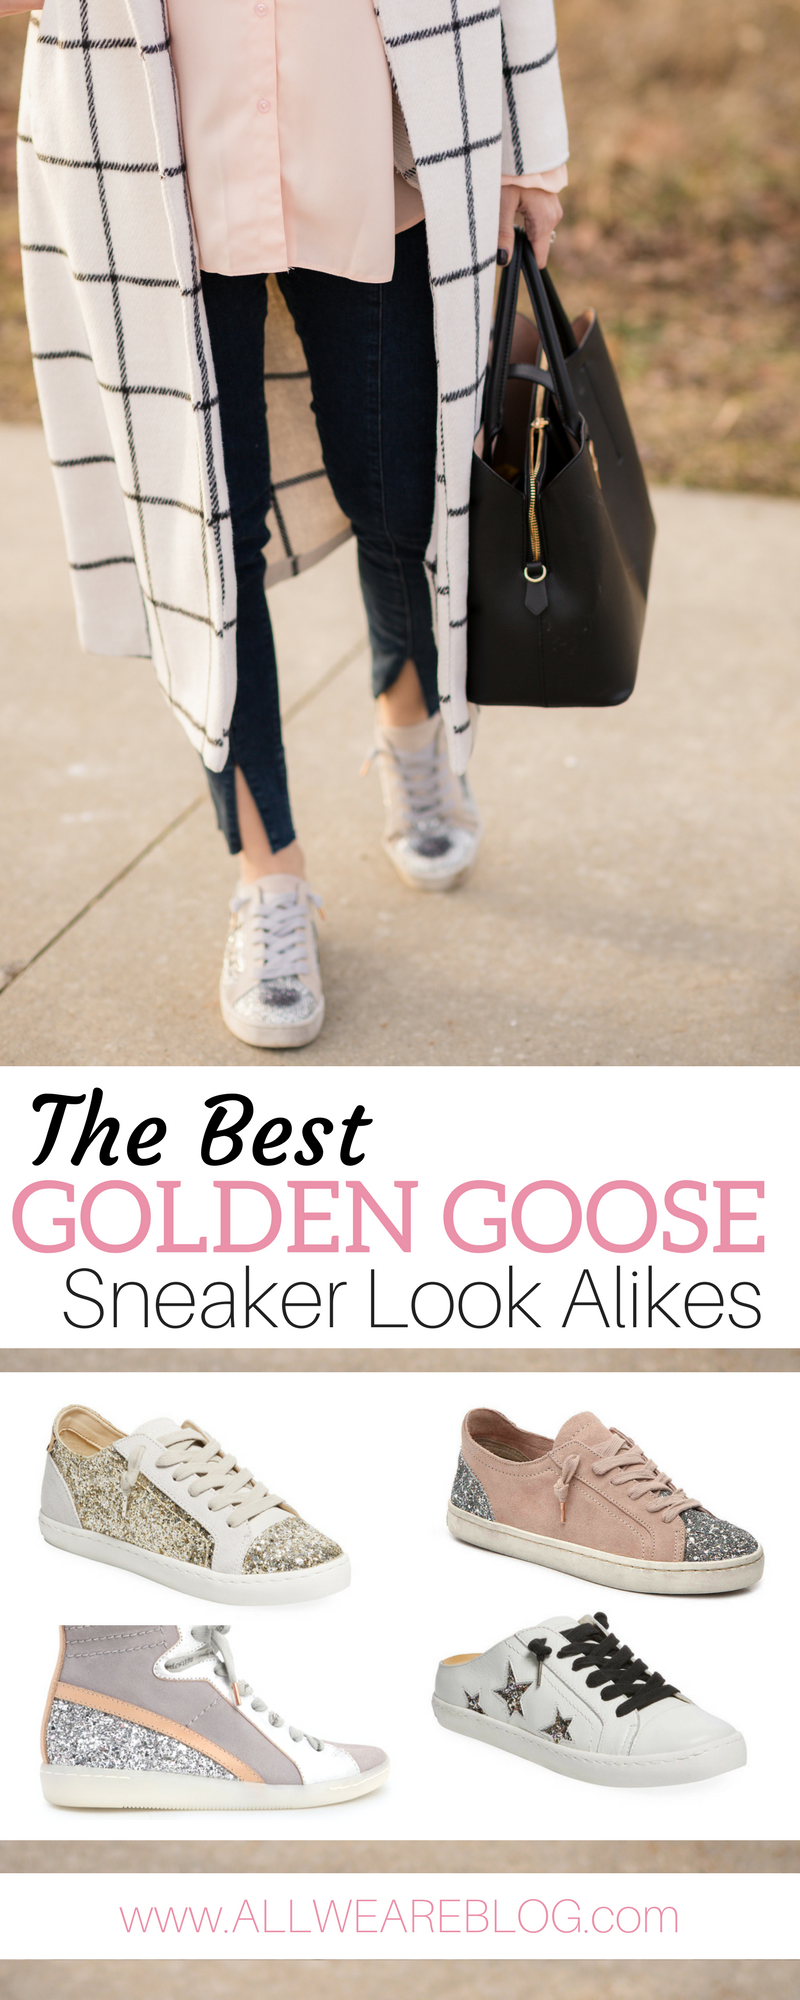 the best golden goose sneaker look alikes